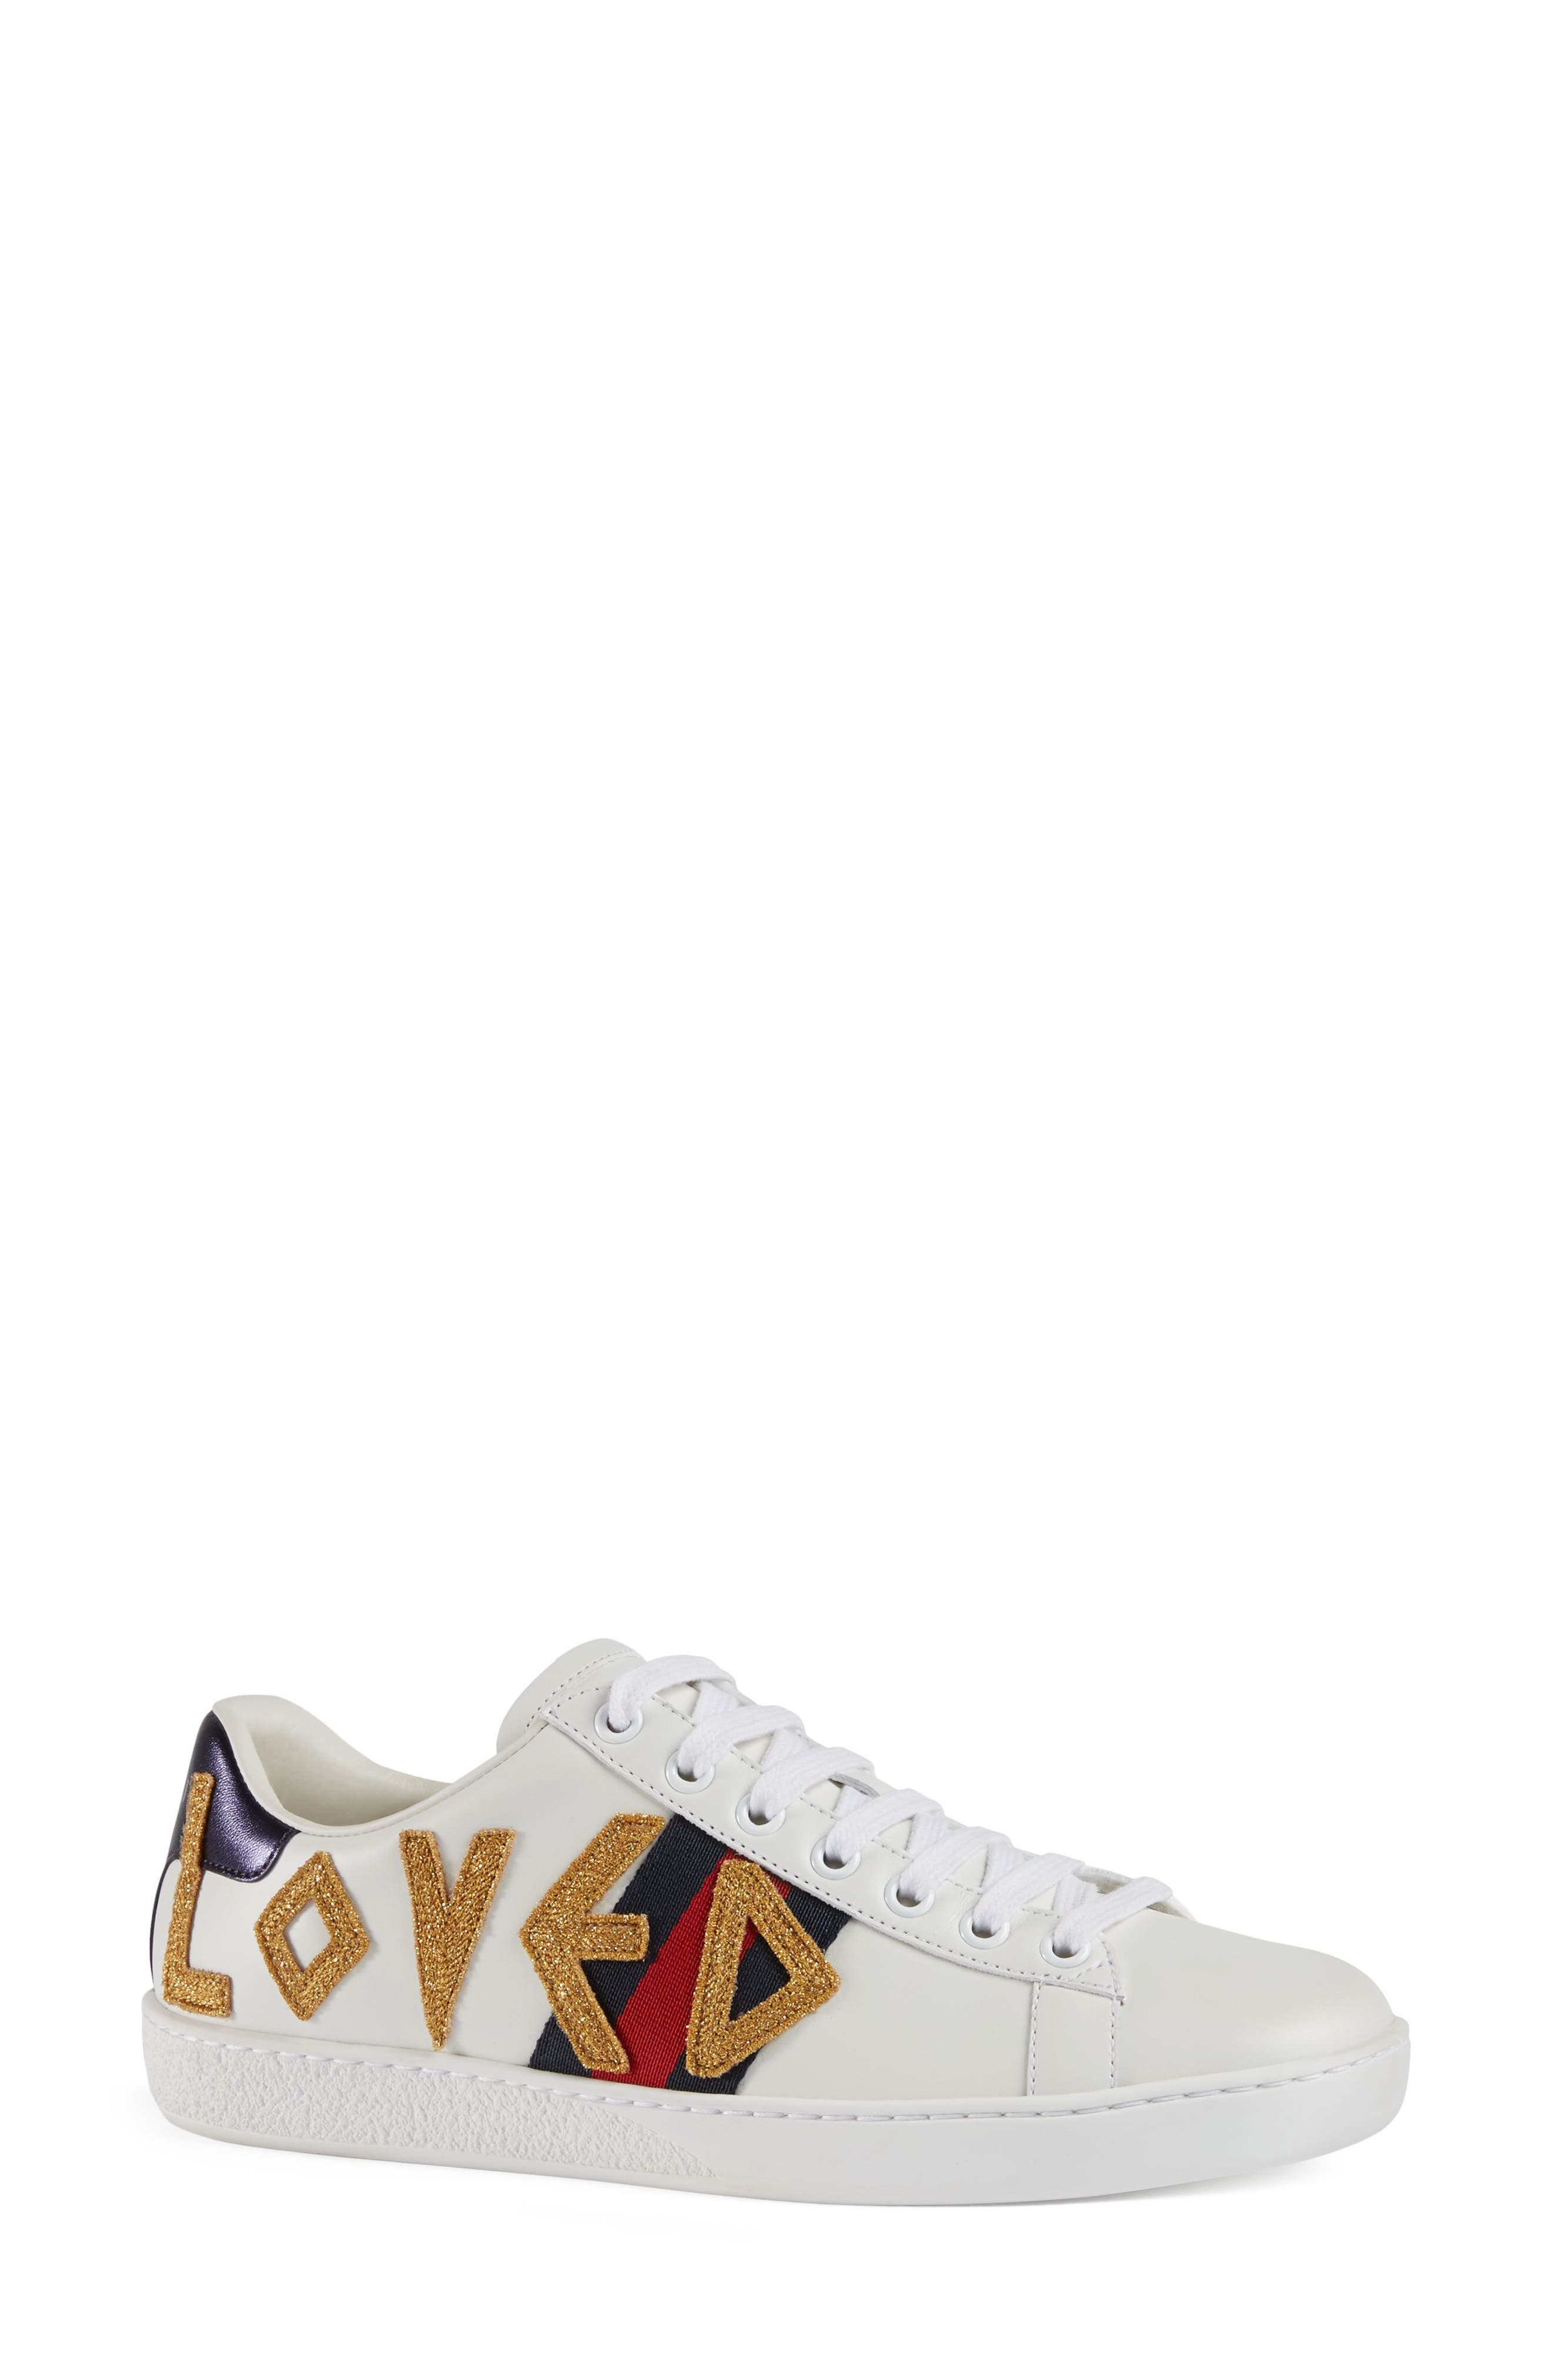 GUCCI, New Ace Loved Sneakers, Main thumbnail 1, color, WHITE